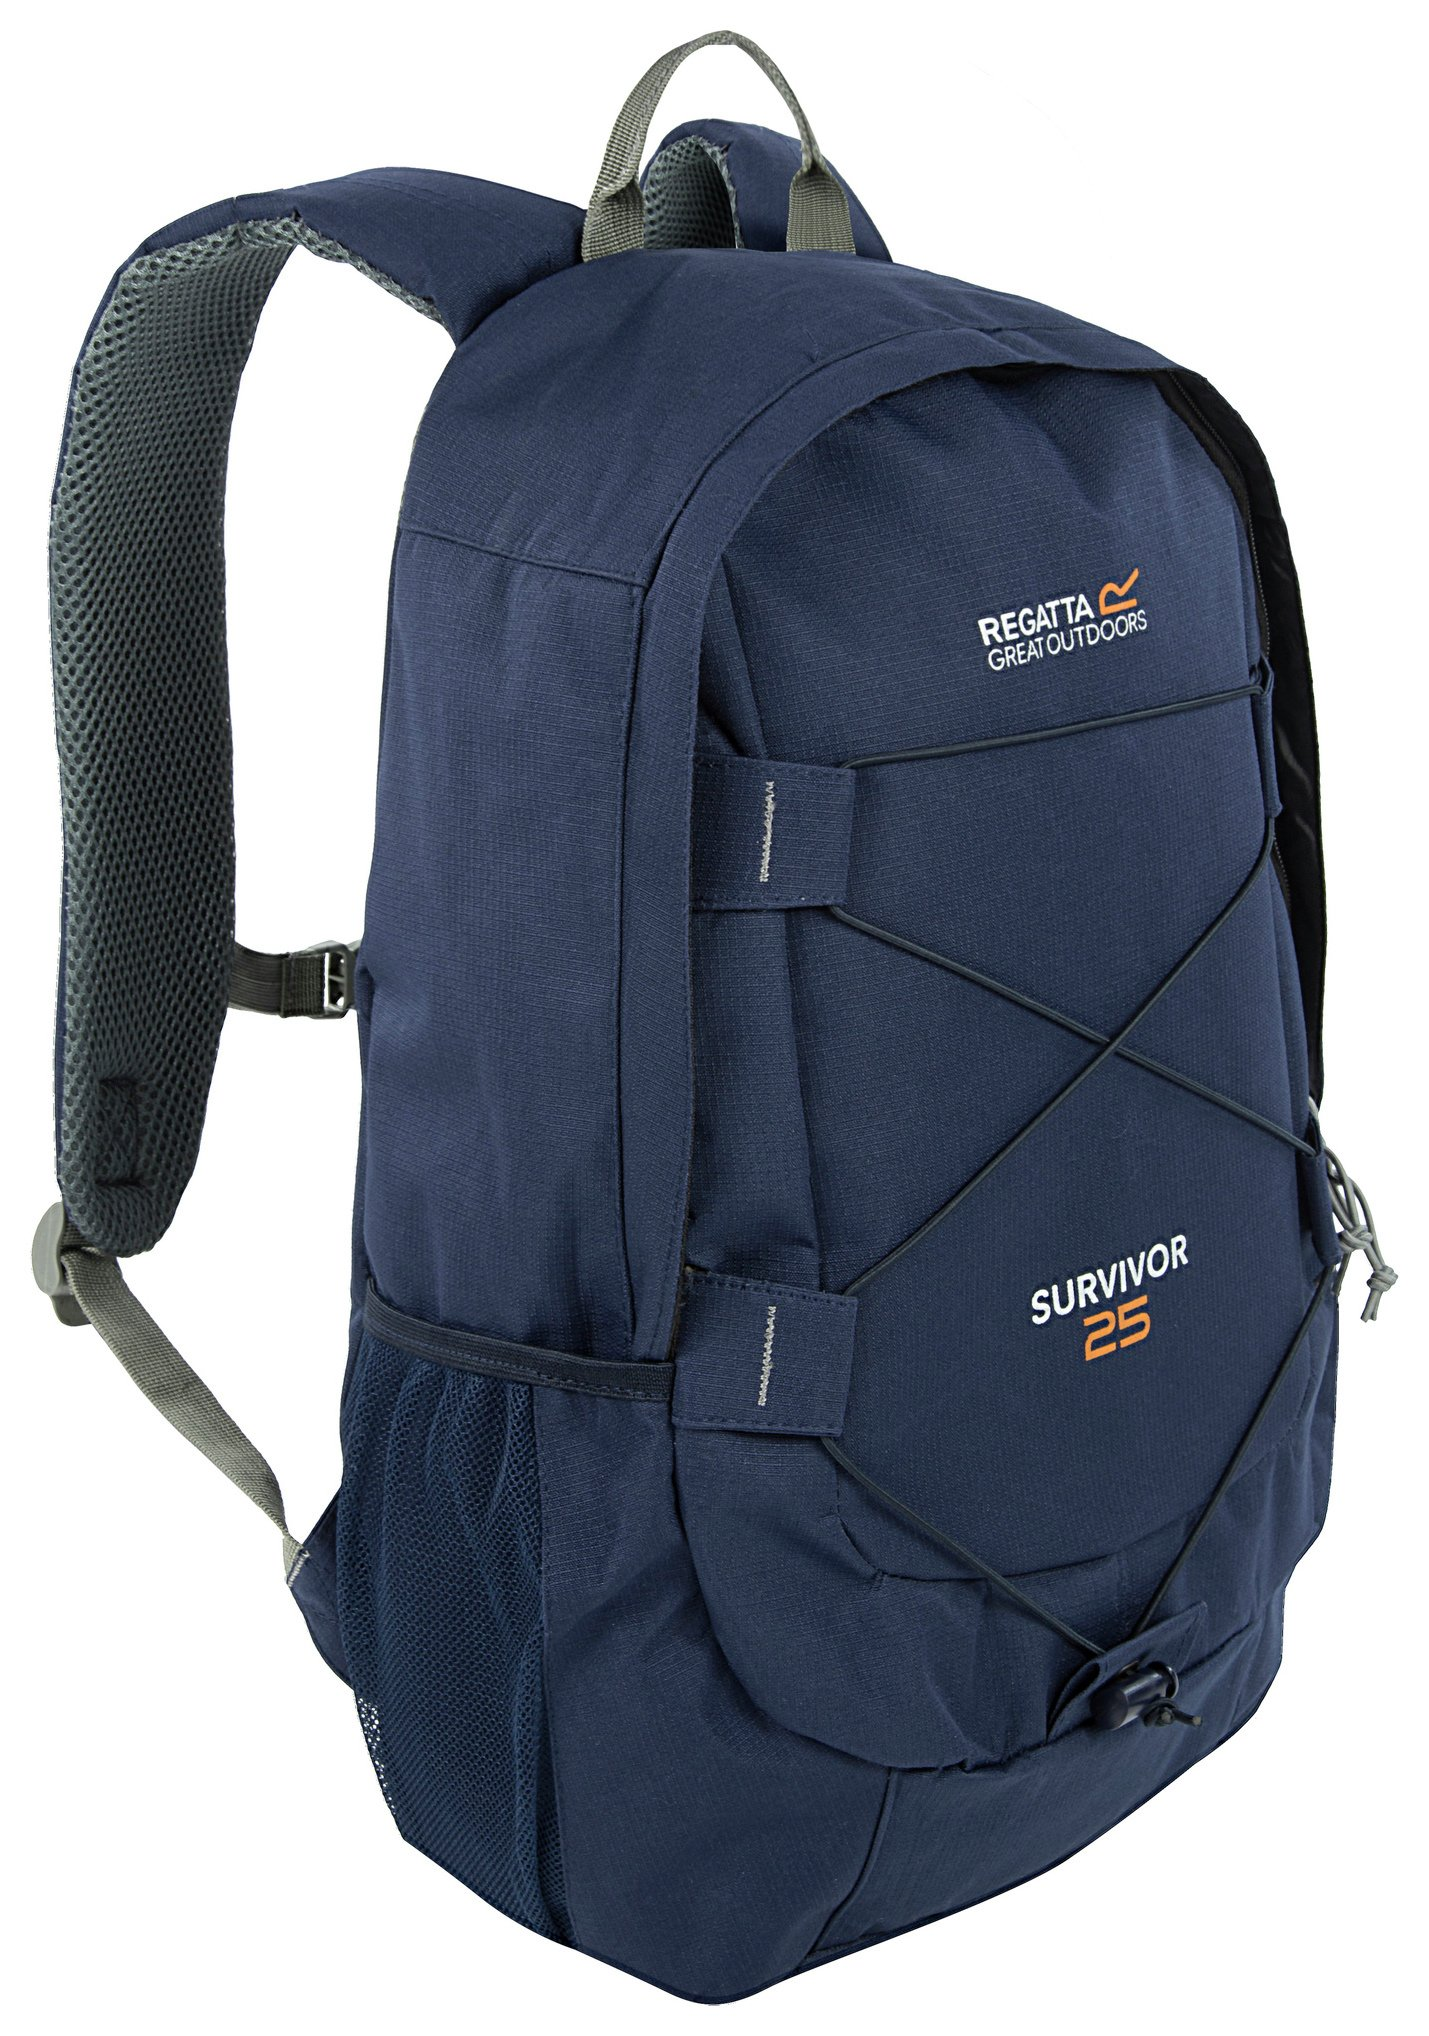 Regatta Survivor III 35L Backpack - Navy. lowest price